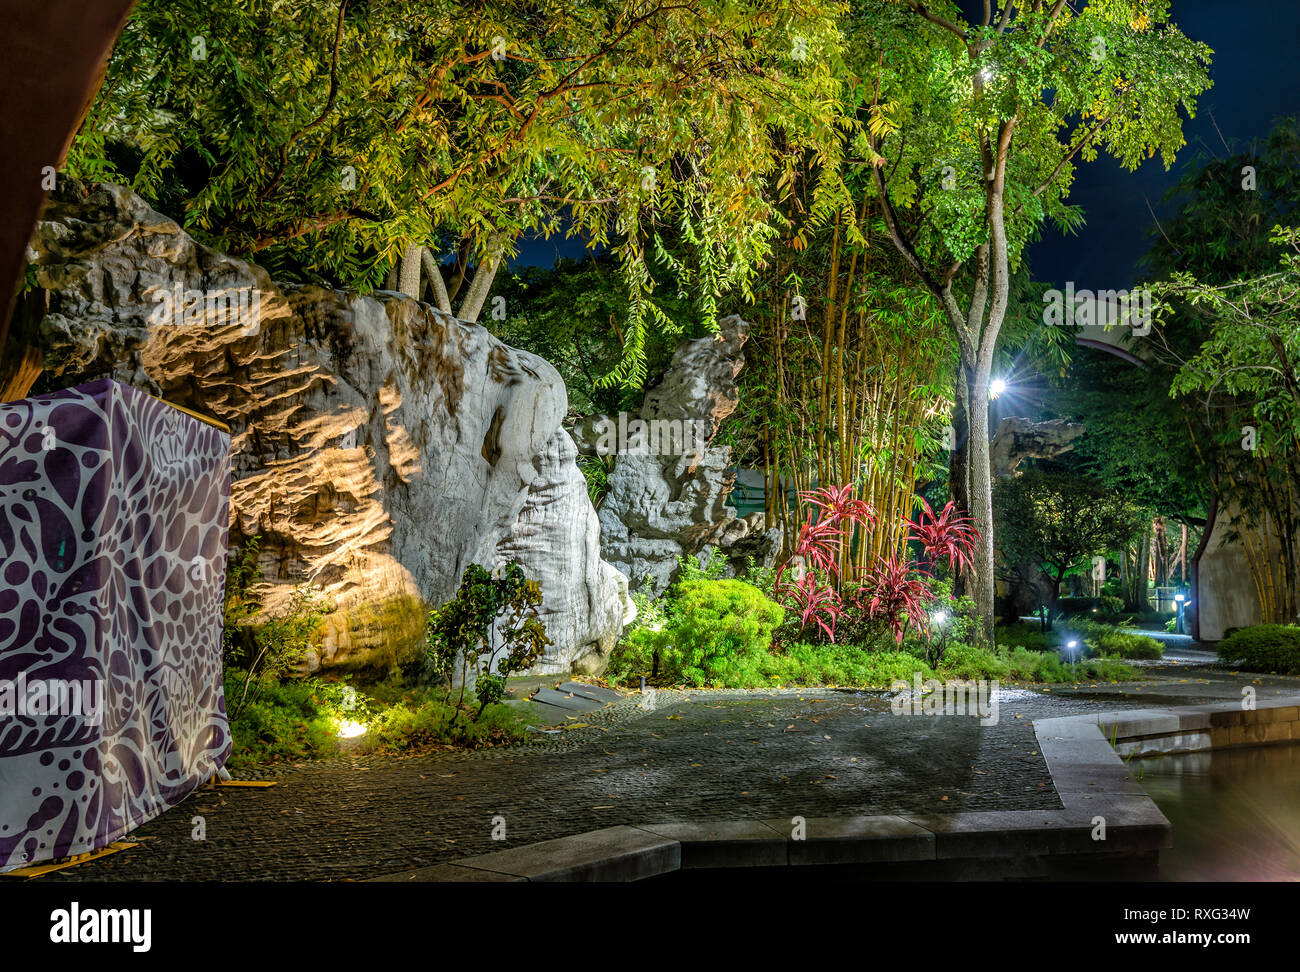 Chinese Garden at Gardens by the Bay, Singapore   Chinesischer Garten im Gardens by the Bay, Singapur - Stock Image